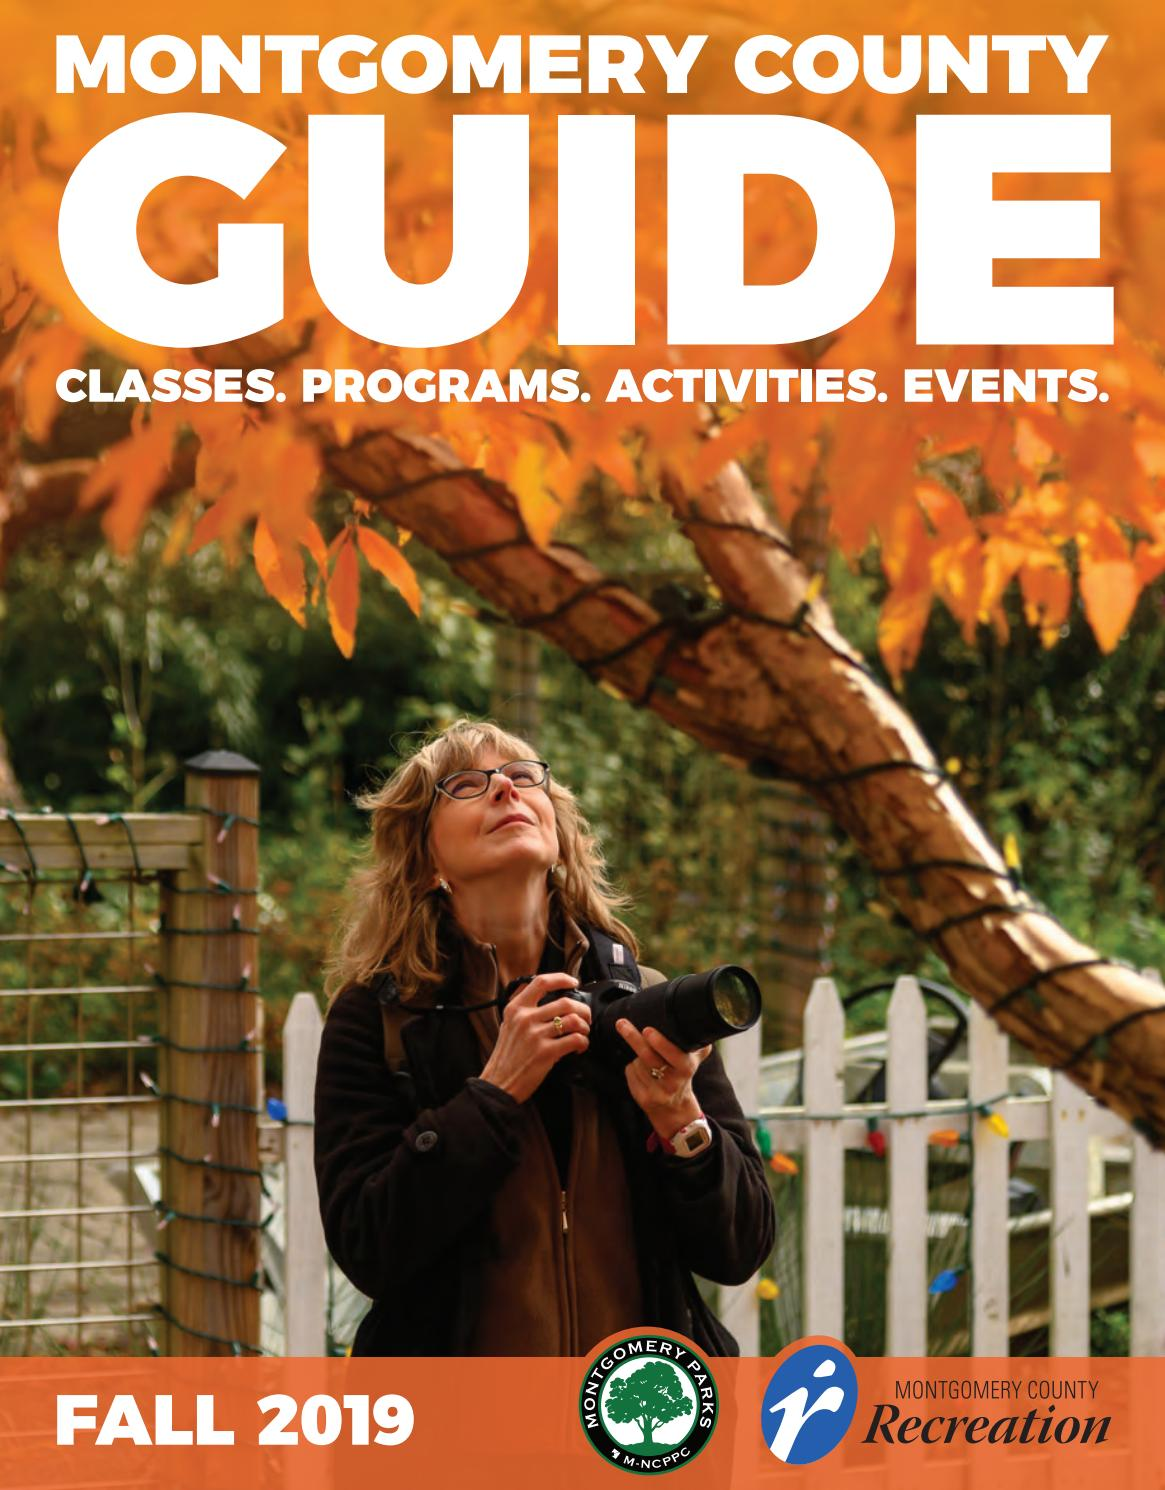 Montgomery County Fall GUIDE 2019 by Montgomery County